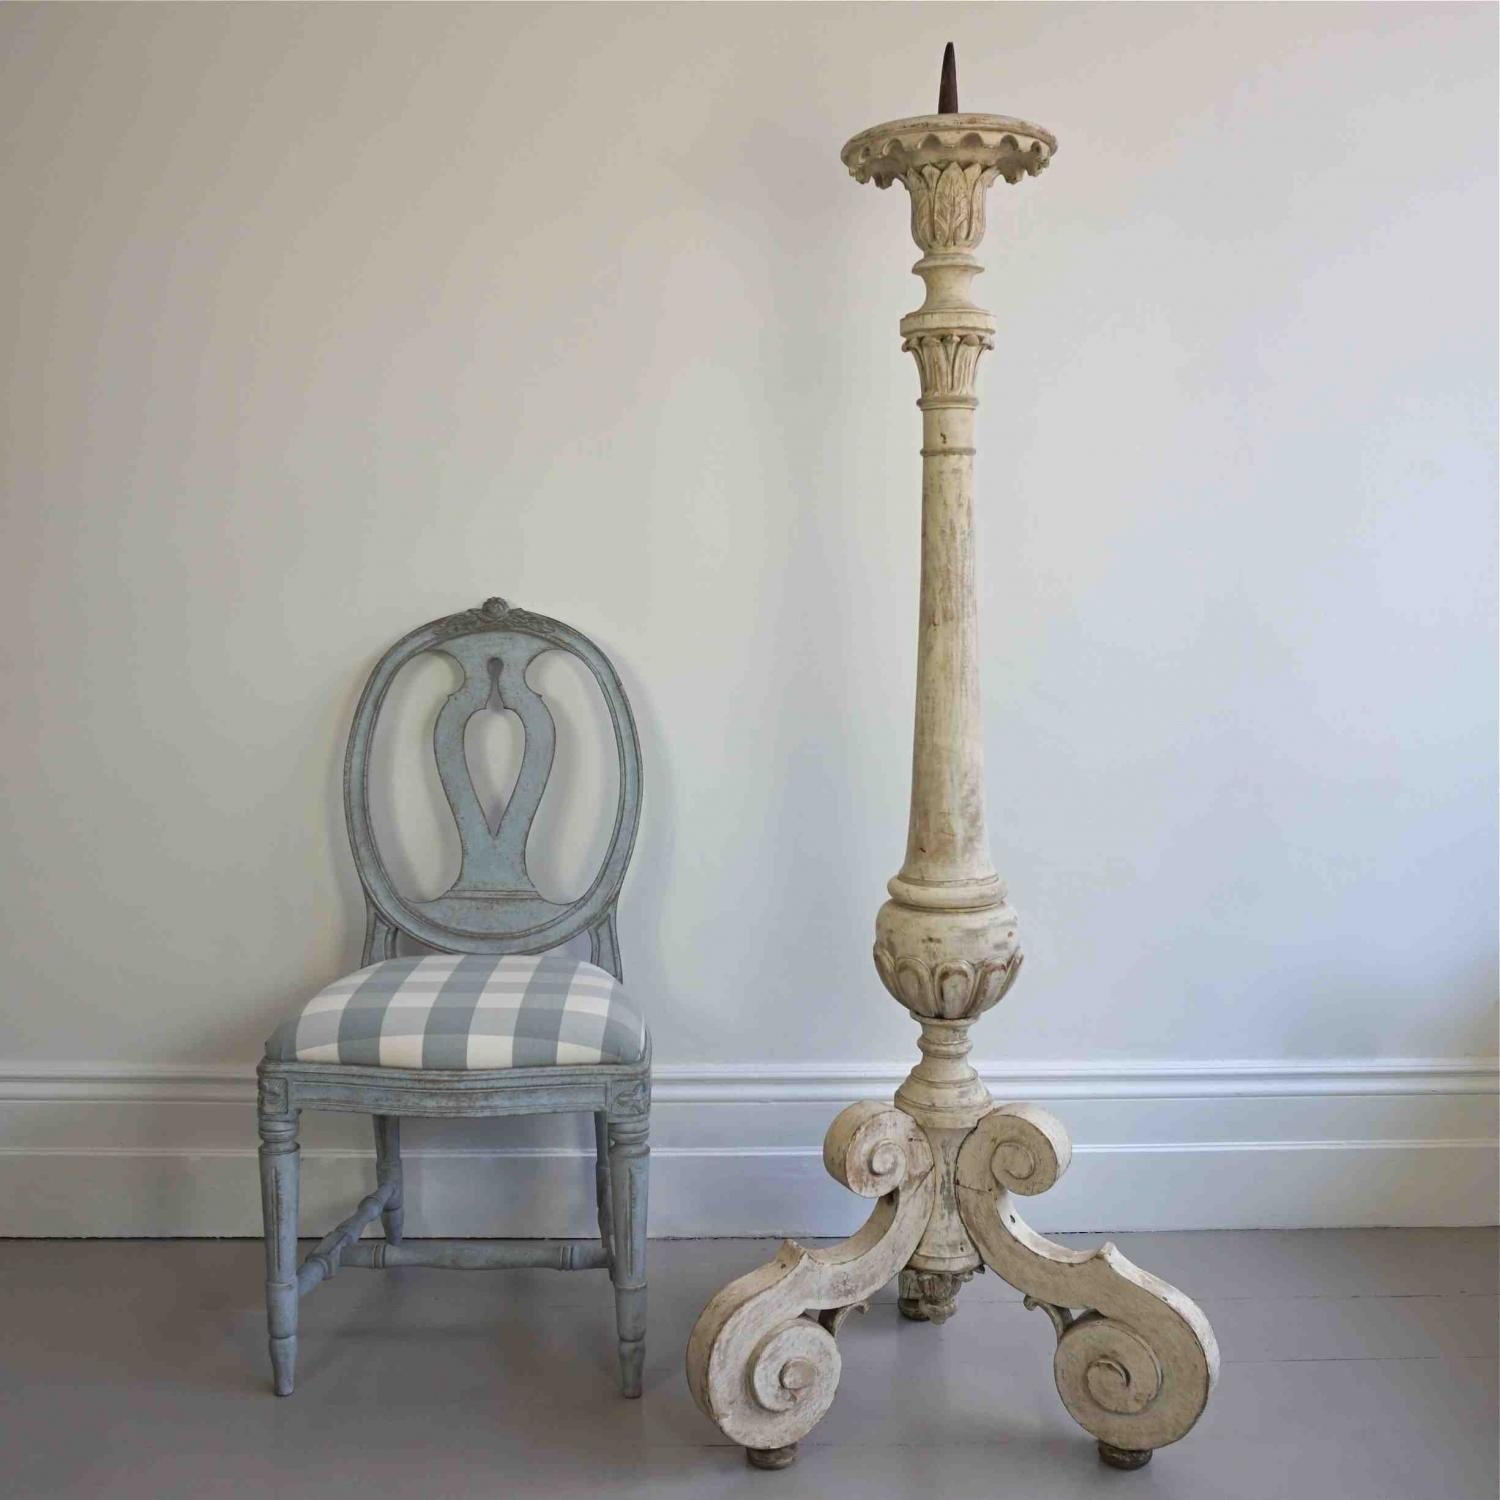 MAGNIFICENT 18TH CENTURY ALTAR CANDLESTICK